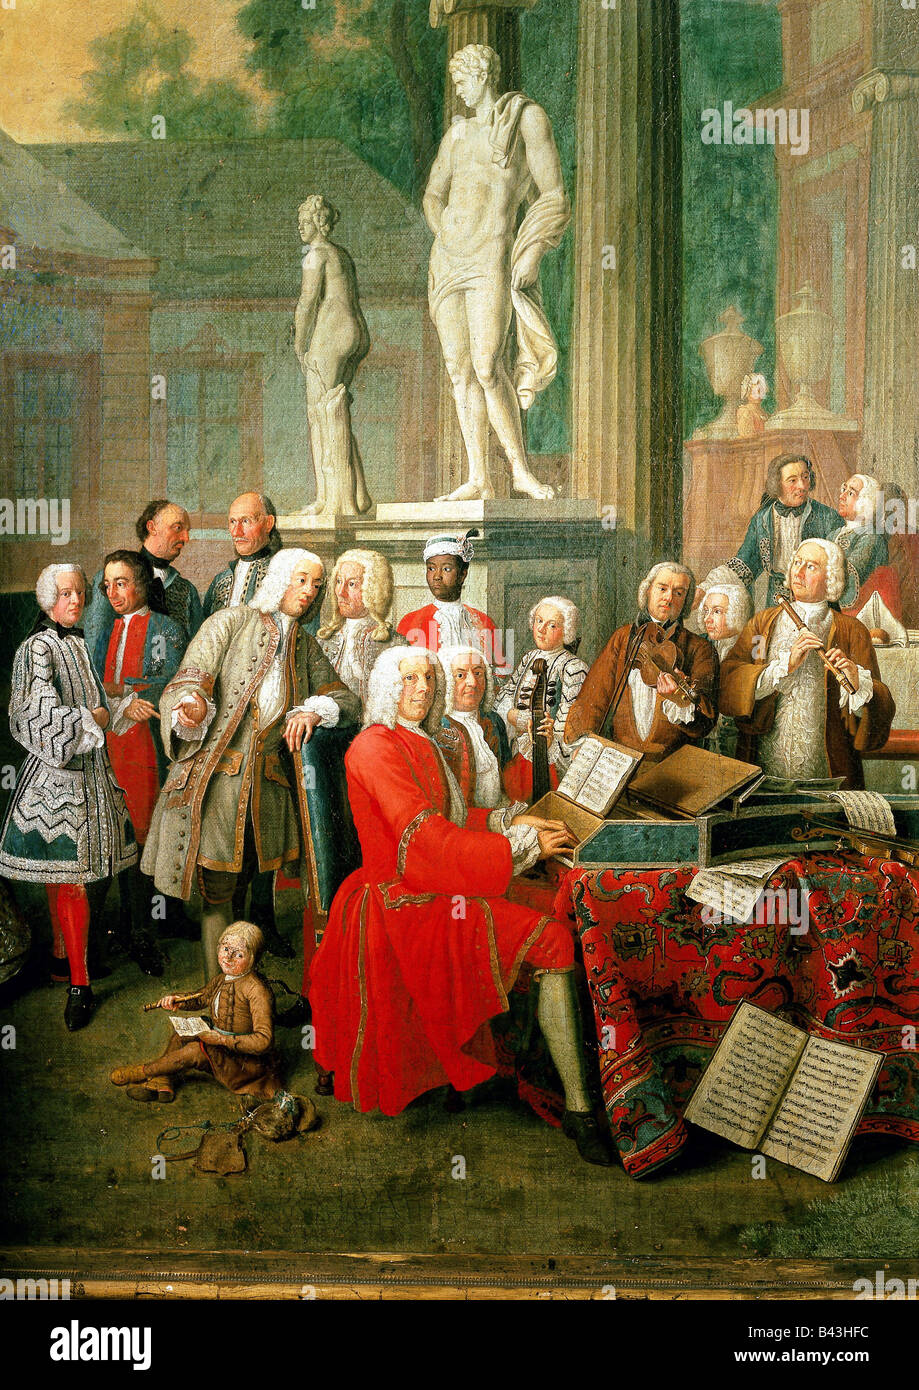 music, concerts, court concert at castle Ismaning, painting by Peter Jakob Horemans, Munich, 1733, Additional-Rights - Stock Image